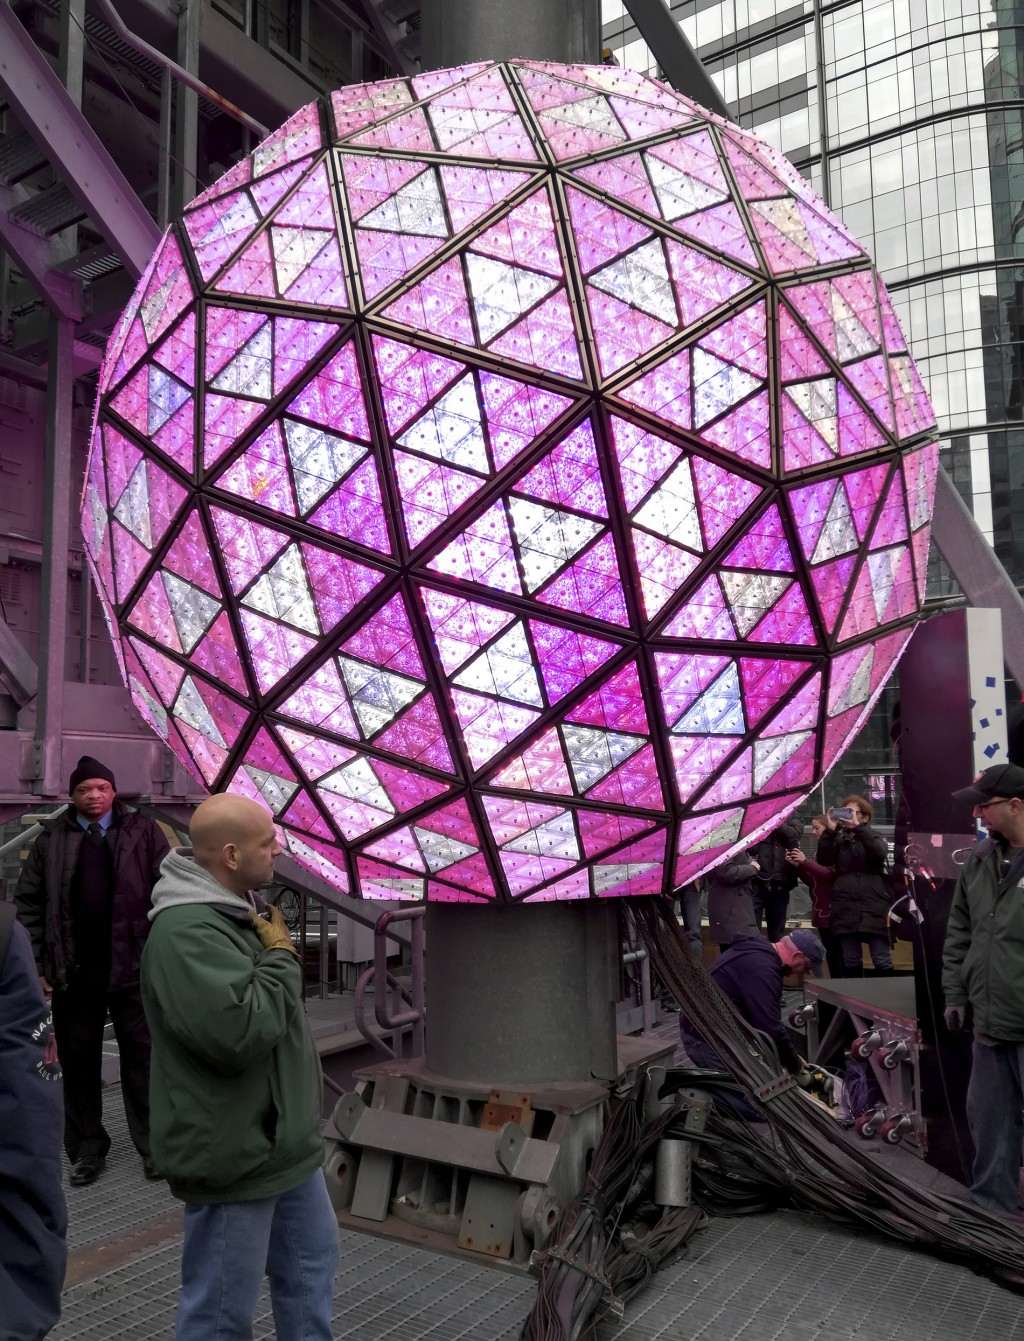 Workers in New York's Times Square perform a test on Sunday, Dec. 30, 2018, of the New Year's Eve ball that will be lit and sent up a 130-foot pole at...